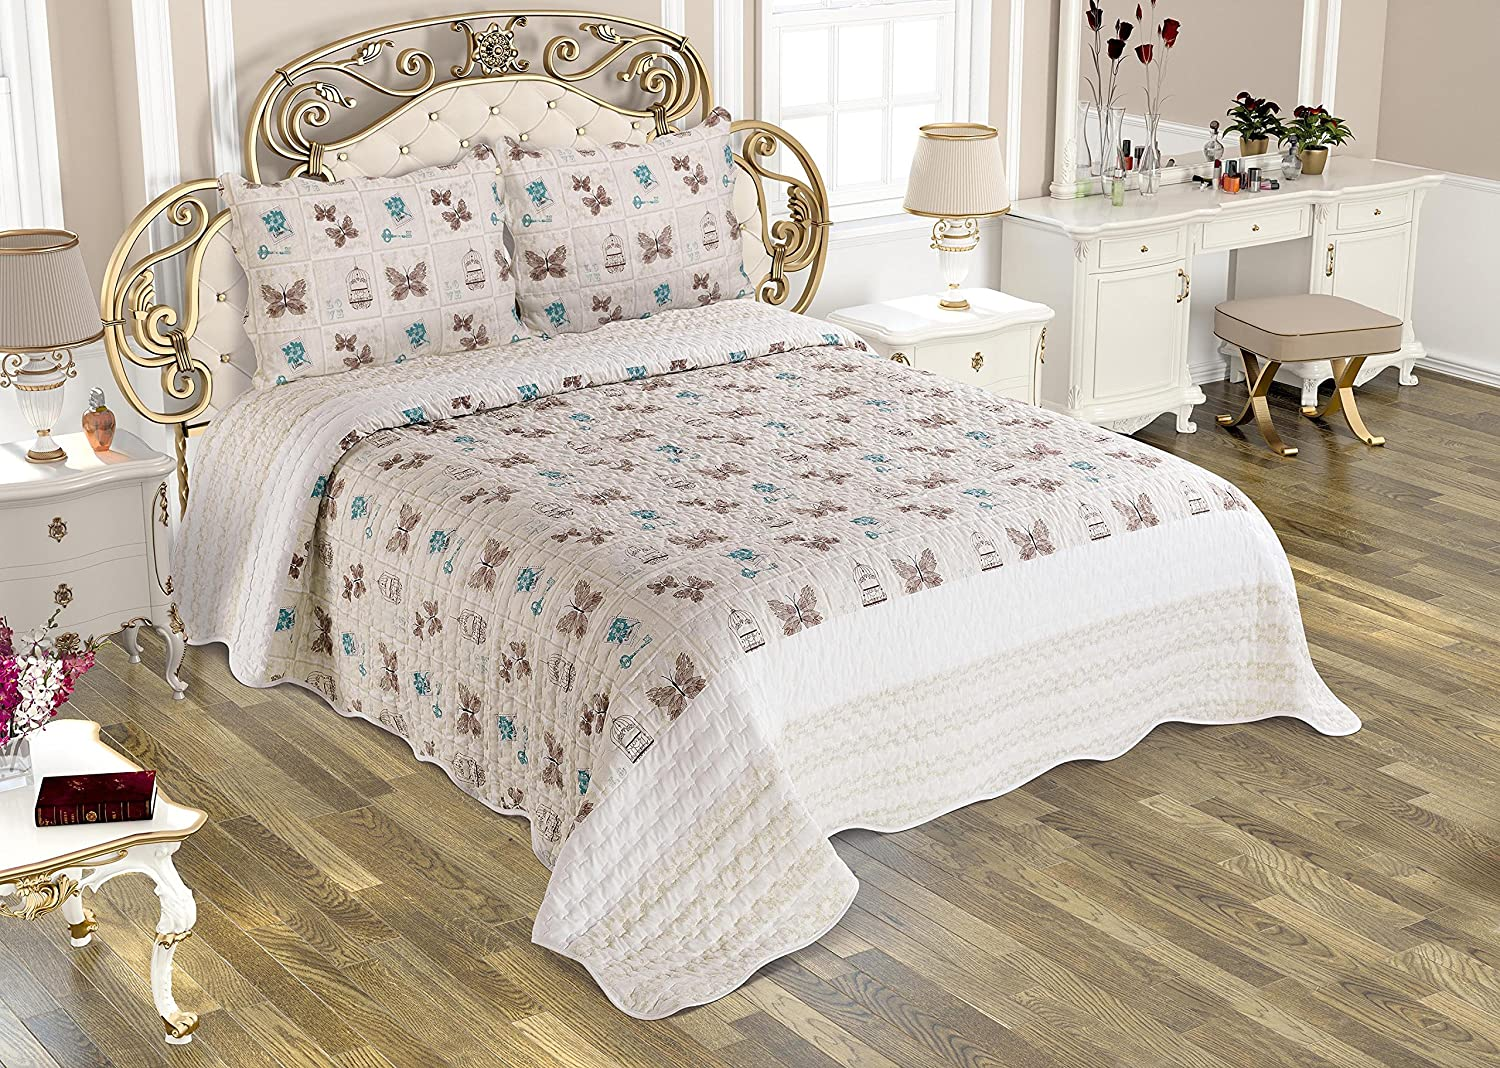 Bedspread Matelasse Bedcover Double-Sided Bedding Coverlet Lightweight Comforter Linen Looking Luxurious Bed Cover